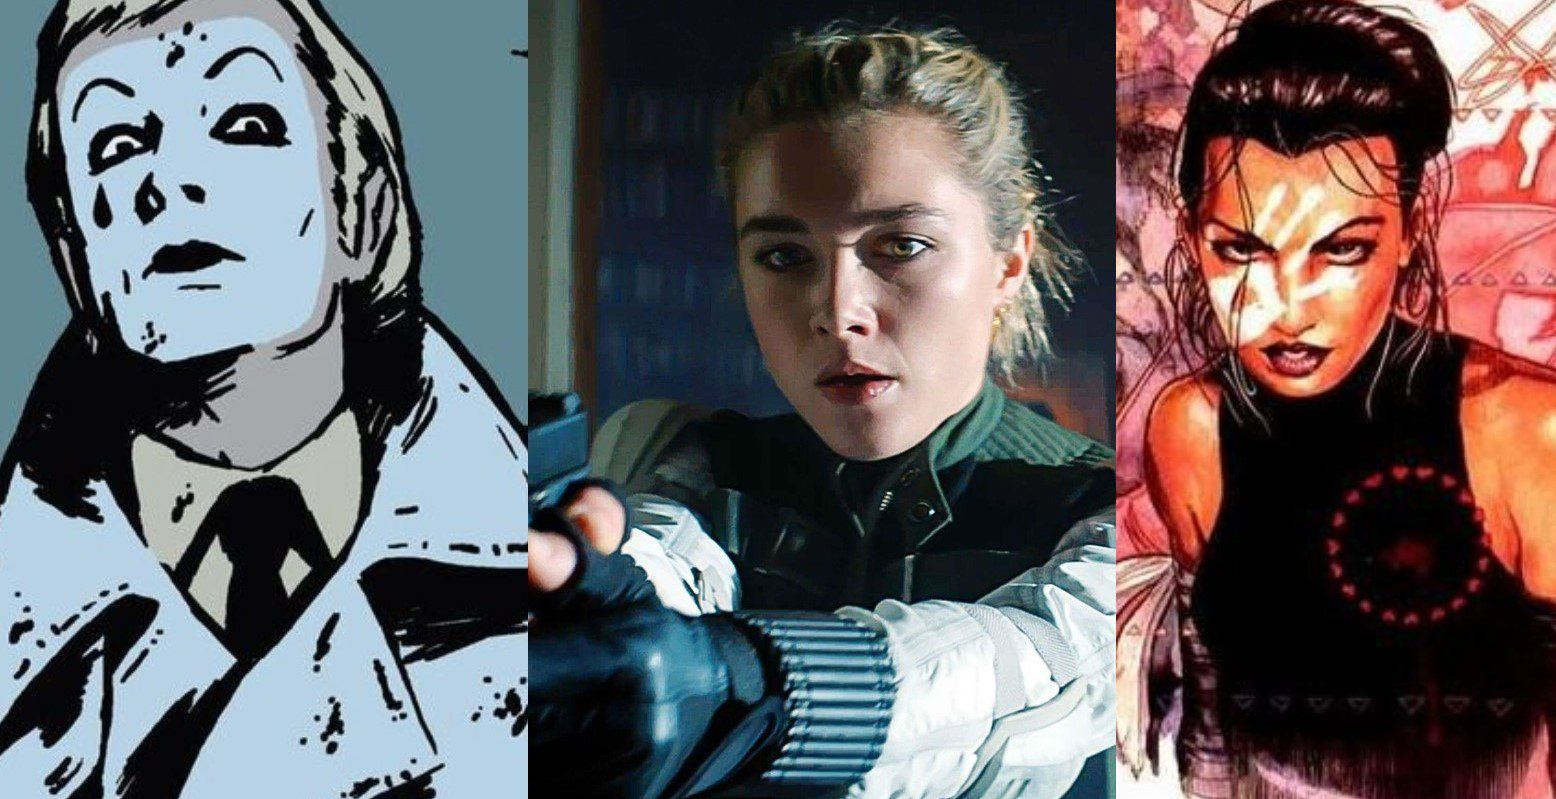 Hawkeye series casts Echo, Clown, Swordsman; Black Widow's Florence Pugh will also appear